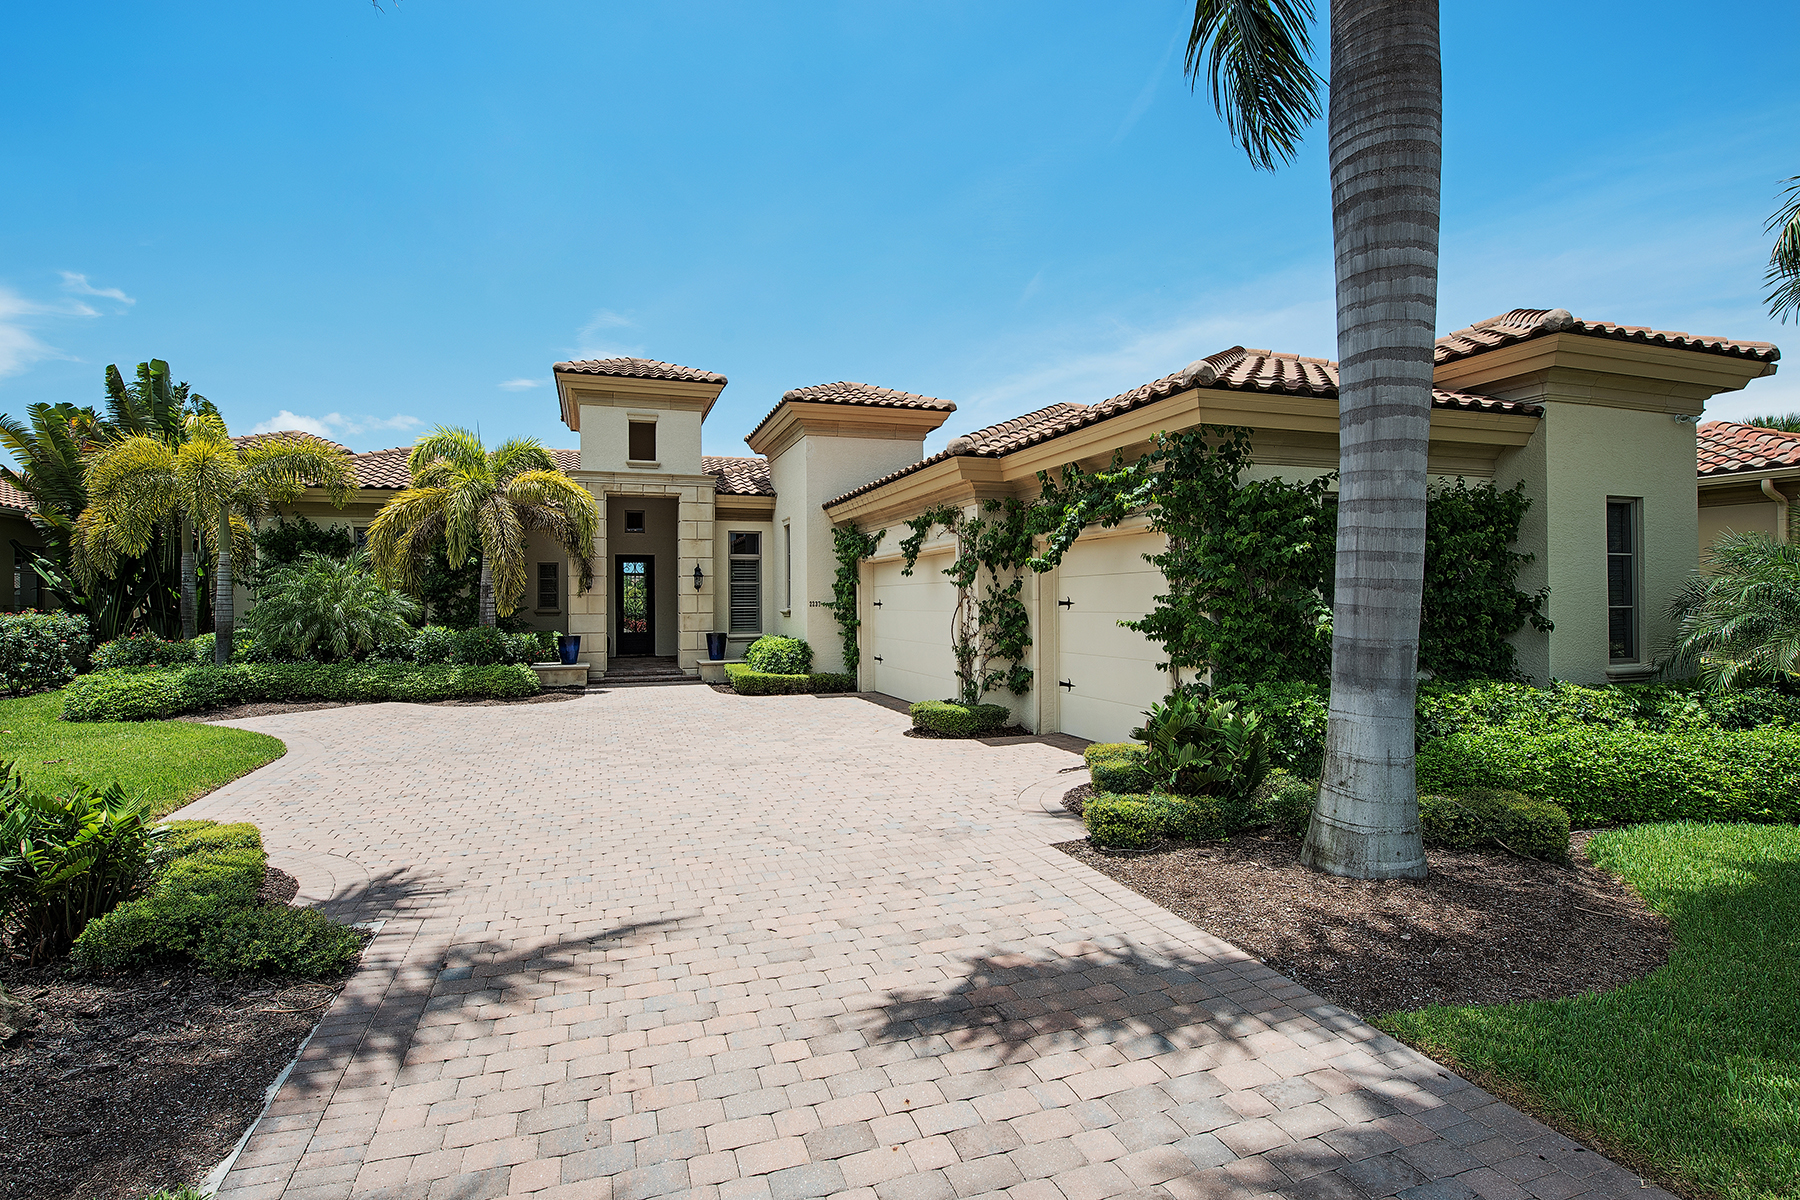 Single Family Home for Sale at 2237 Miramonte Ct , Naples, FL 34105 2237 Miramonte Ct Naples, Florida 34105 United States